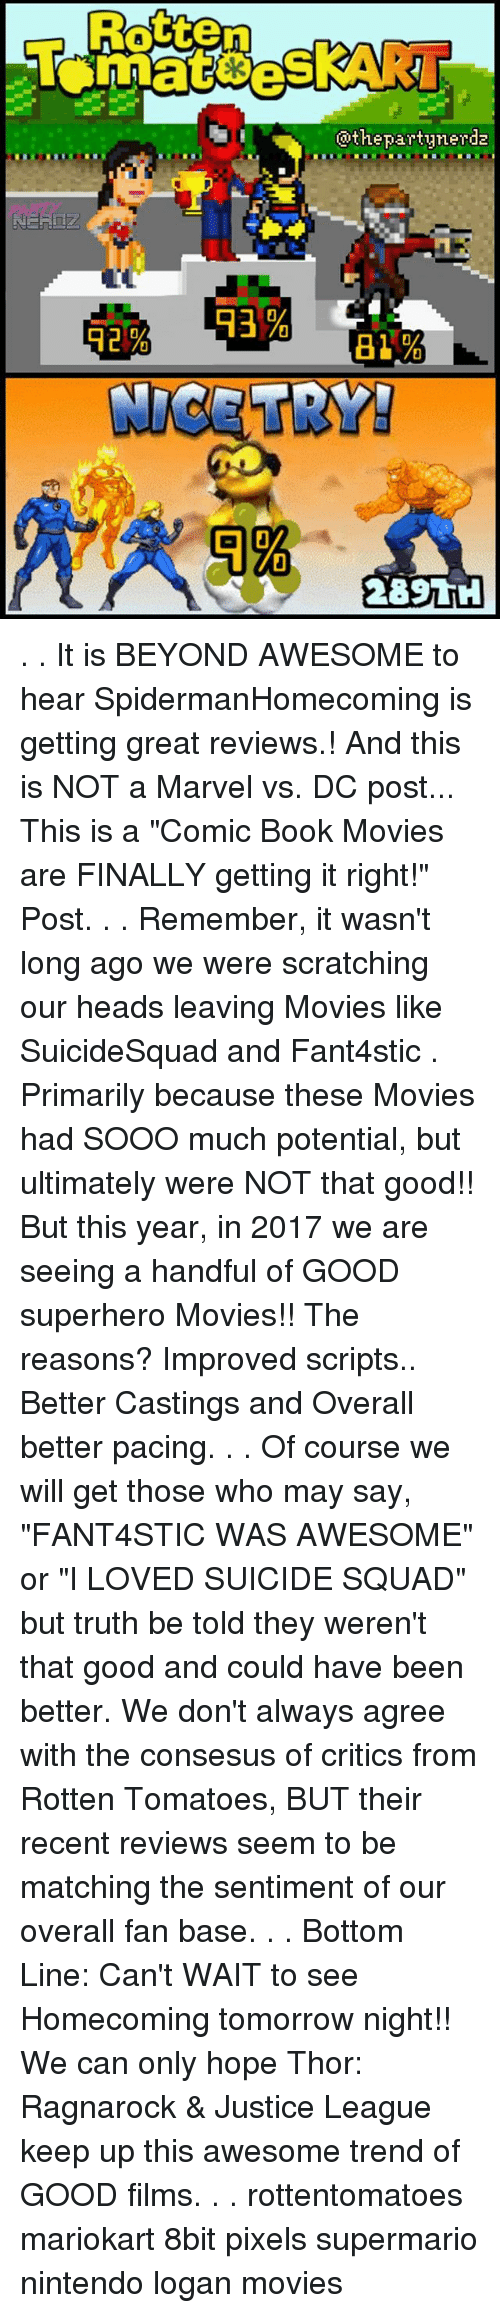 """Memes, Movies, and Nintendo: Rotten  @thepartynerda . . It is BEYOND AWESOME to hear SpidermanHomecoming is getting great reviews.! And this is NOT a Marvel vs. DC post... This is a """"Comic Book Movies are FINALLY getting it right!"""" Post. . . Remember, it wasn't long ago we were scratching our heads leaving Movies like SuicideSquad and Fant4stic . Primarily because these Movies had SOOO much potential, but ultimately were NOT that good!! But this year, in 2017 we are seeing a handful of GOOD superhero Movies!! The reasons? Improved scripts.. Better Castings and Overall better pacing. . . Of course we will get those who may say, """"FANT4STIC WAS AWESOME"""" or """"I LOVED SUICIDE SQUAD"""" but truth be told they weren't that good and could have been better. We don't always agree with the consesus of critics from Rotten Tomatoes, BUT their recent reviews seem to be matching the sentiment of our overall fan base. . . Bottom Line: Can't WAIT to see Homecoming tomorrow night!! We can only hope Thor: Ragnarock & Justice League keep up this awesome trend of GOOD films. . . rottentomatoes mariokart 8bit pixels supermario nintendo logan movies"""